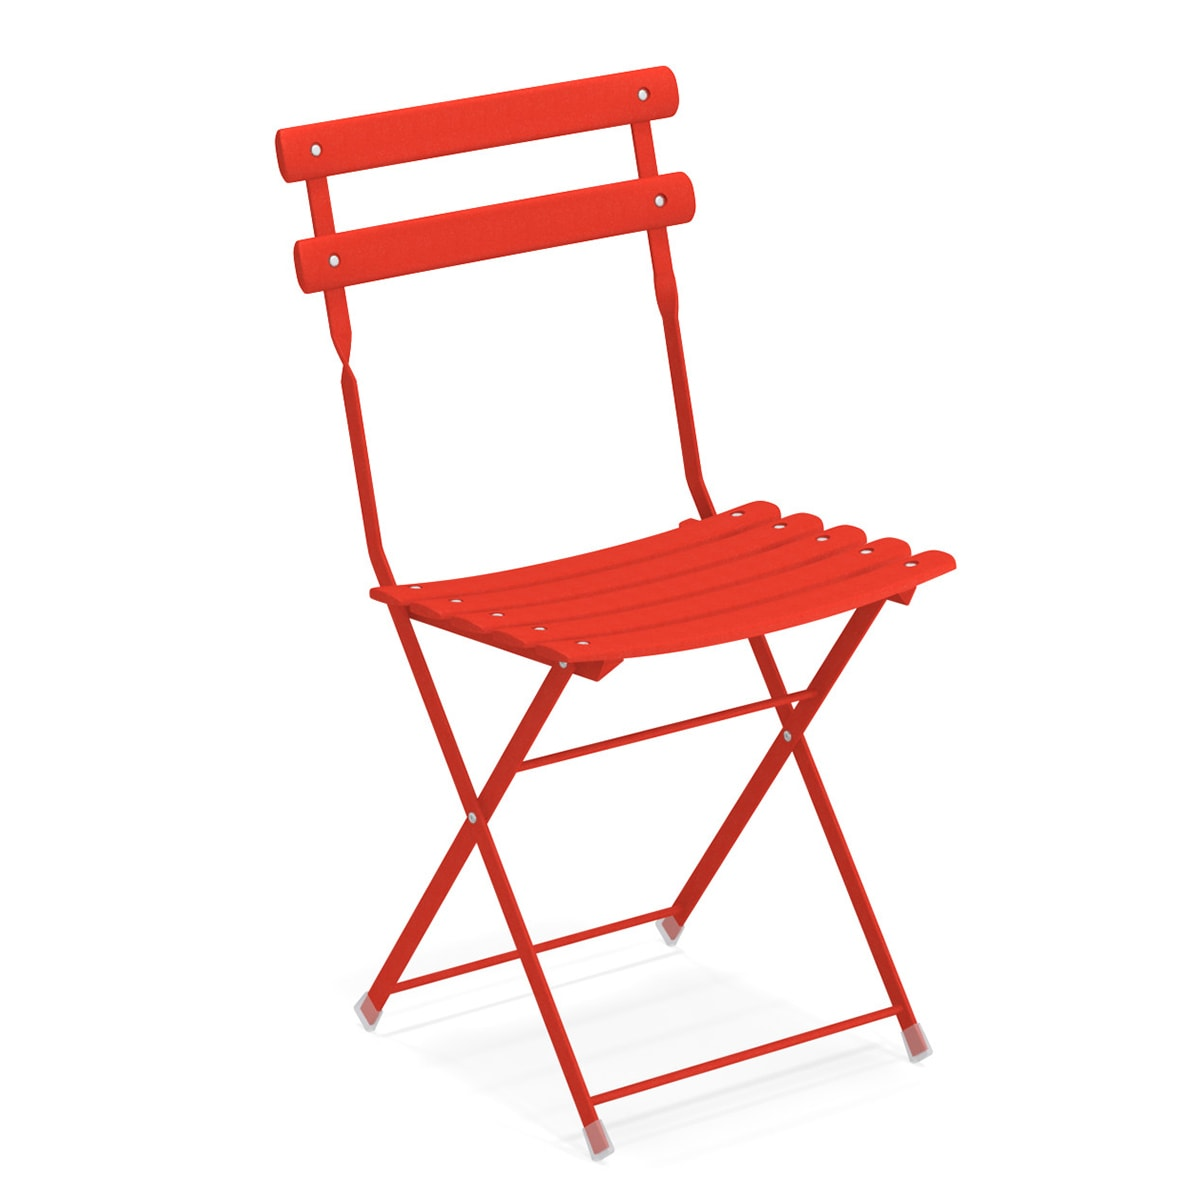 emu 314 Arc En Ciel Folding Side Chair - Indoor/Outdoor, Steel Frame, Red